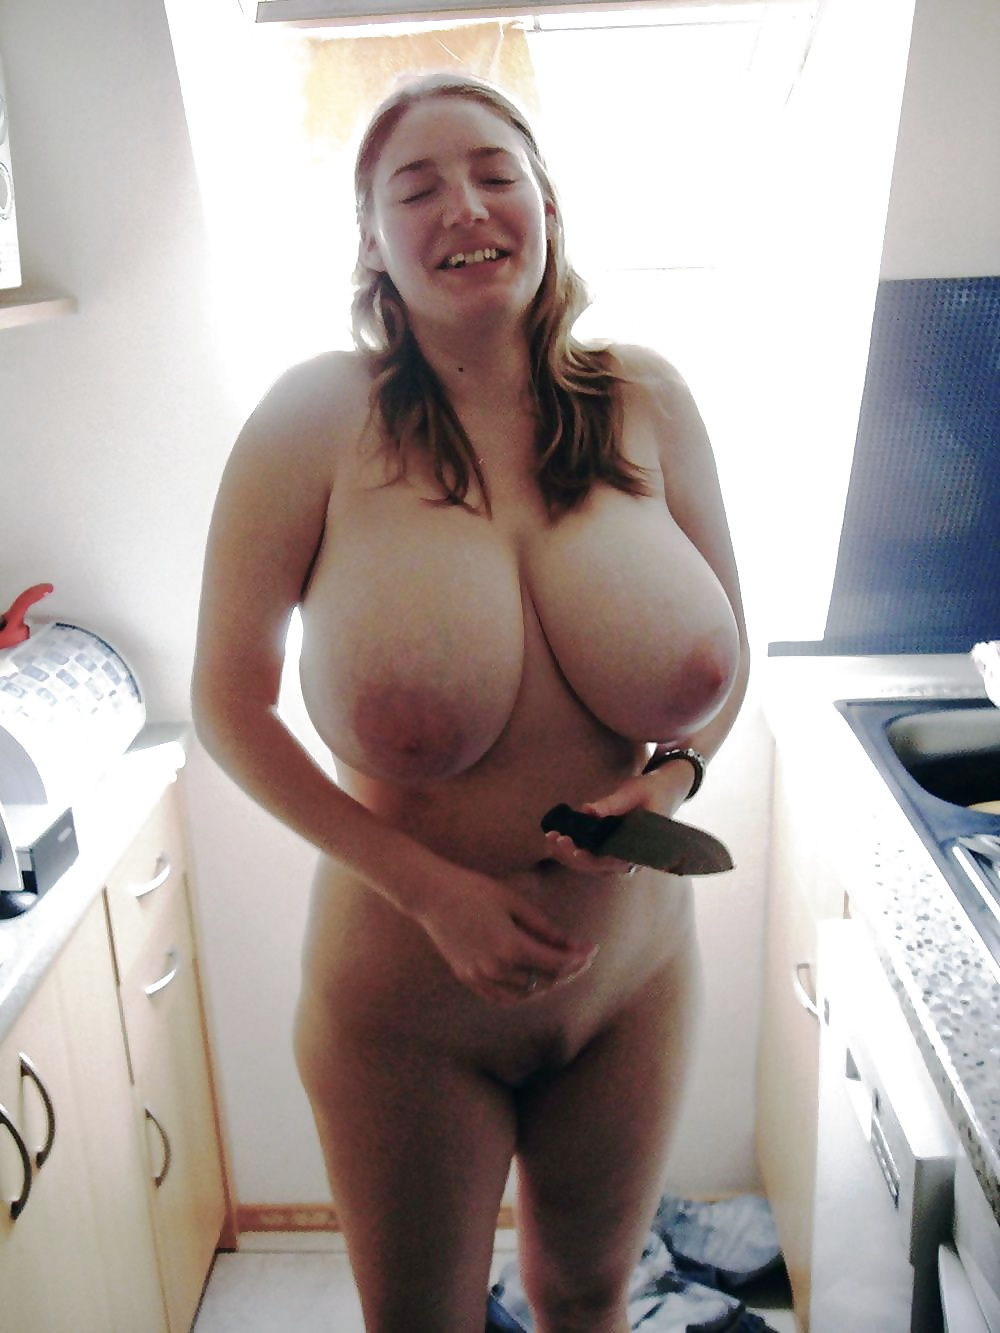 Chubby Teens With Big Tits - 25 Pics  Xhamster-8890